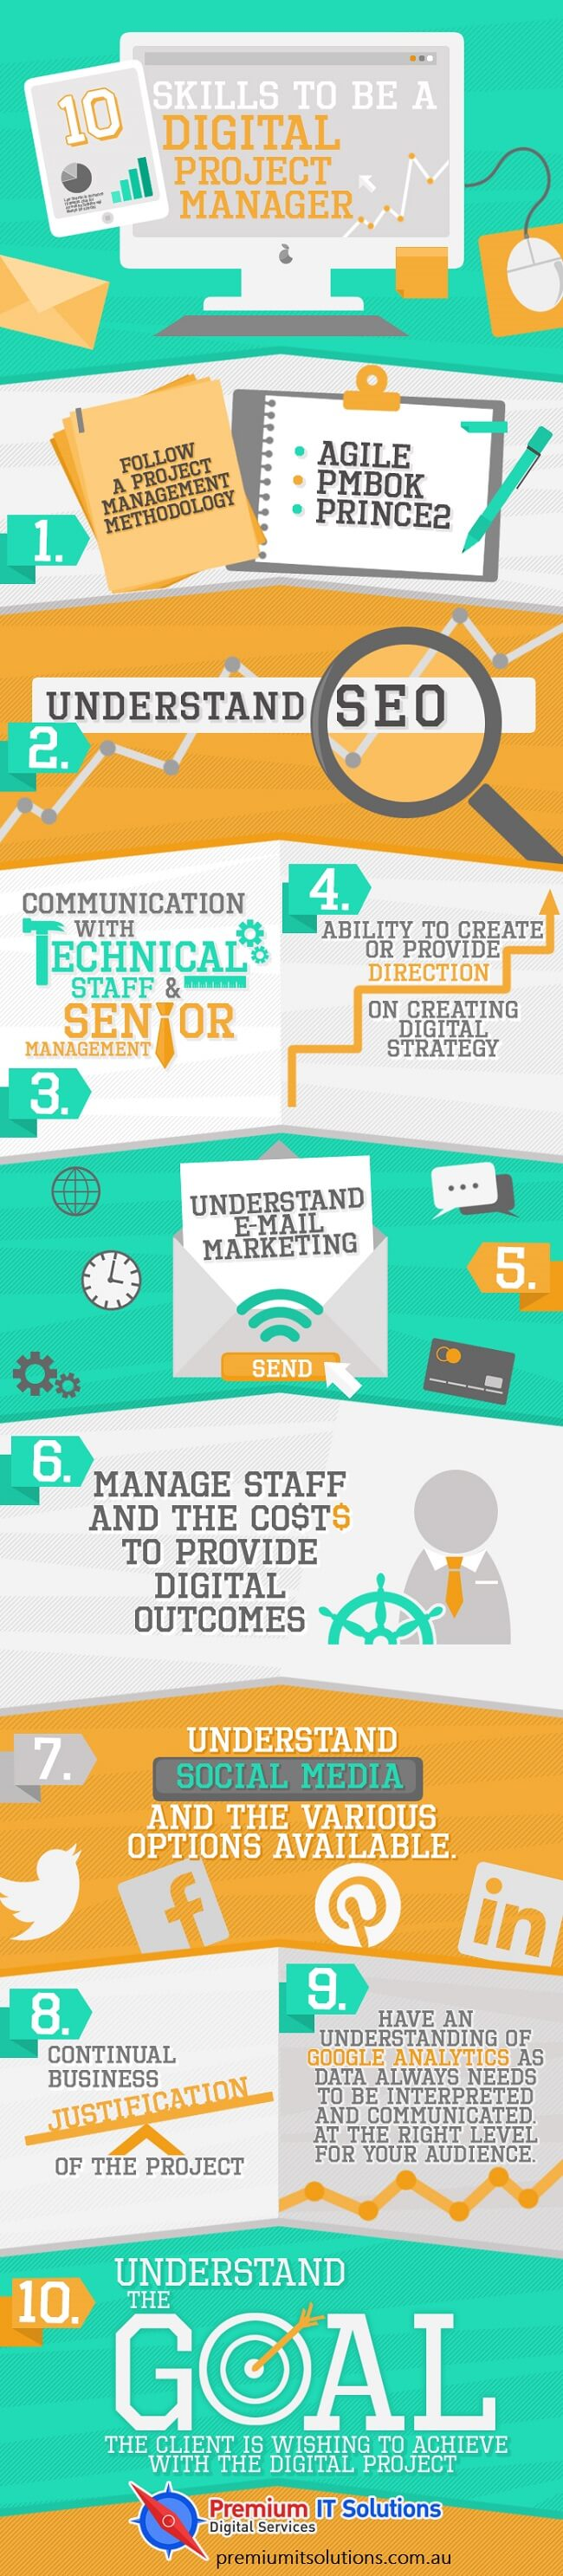 digital project manager infographic top 10 skills